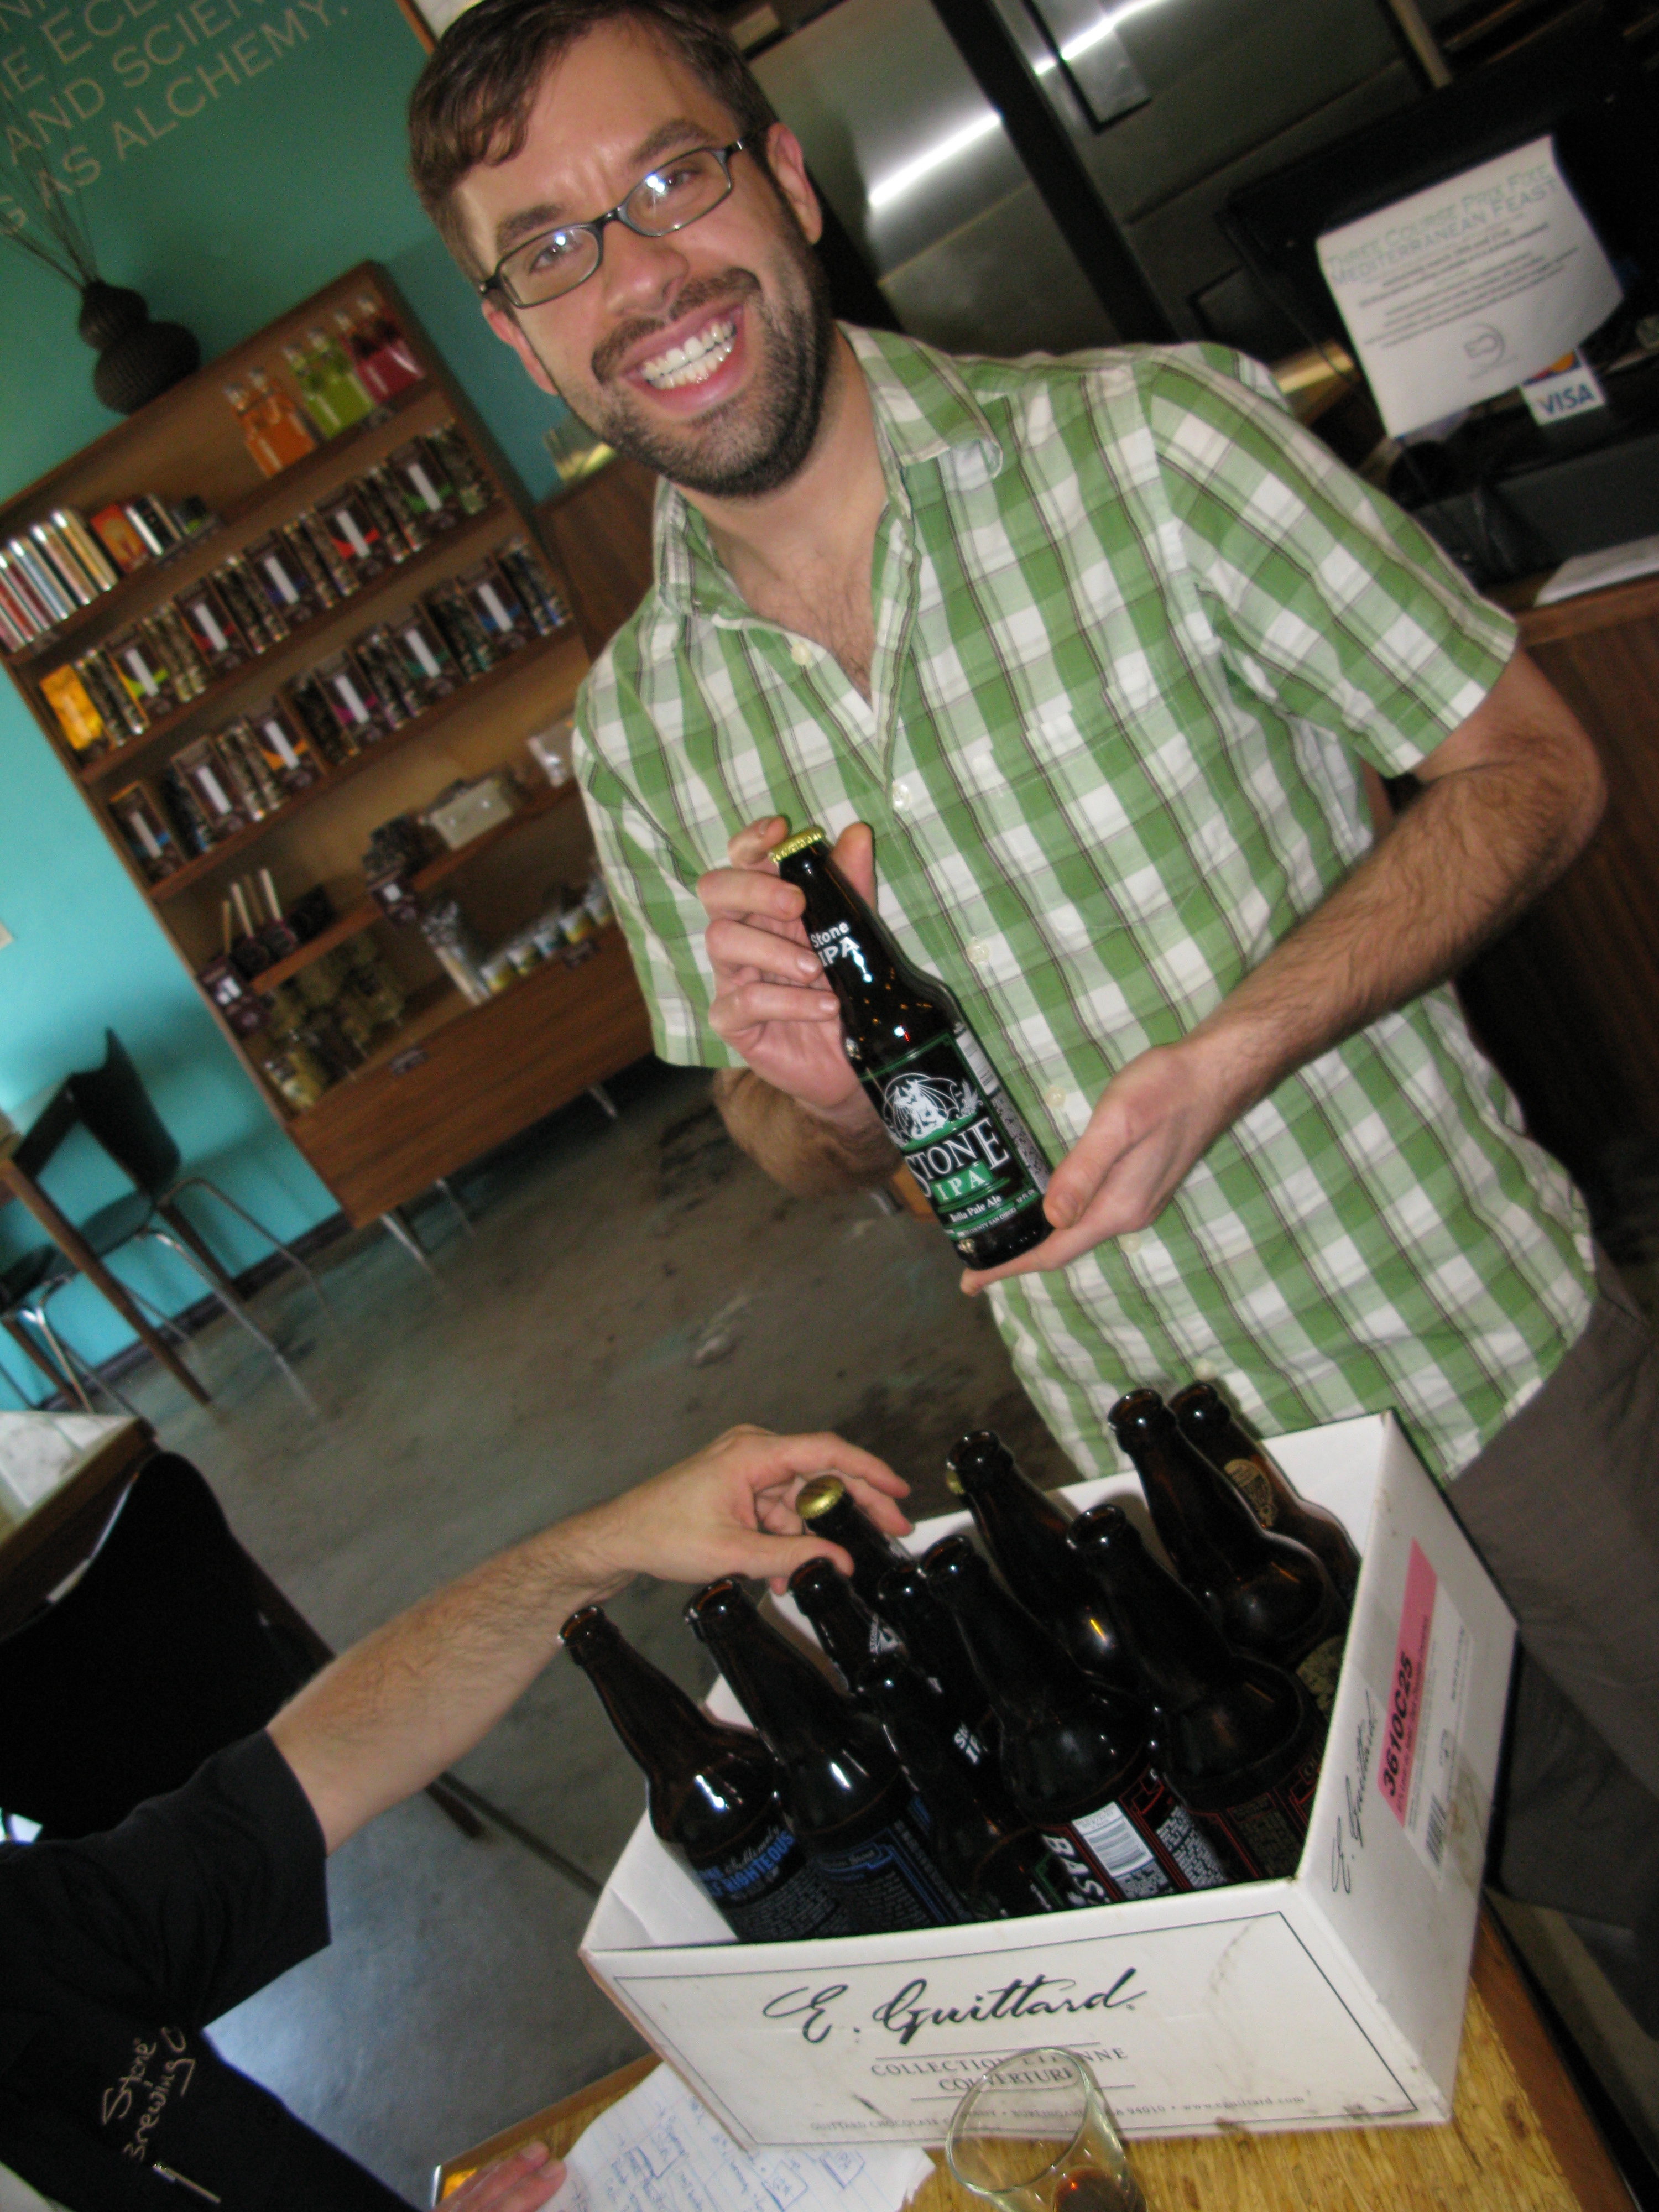 Eclipse Chocolat Owner, Will Gustwiller, now the proud owner of leftover Stone beer